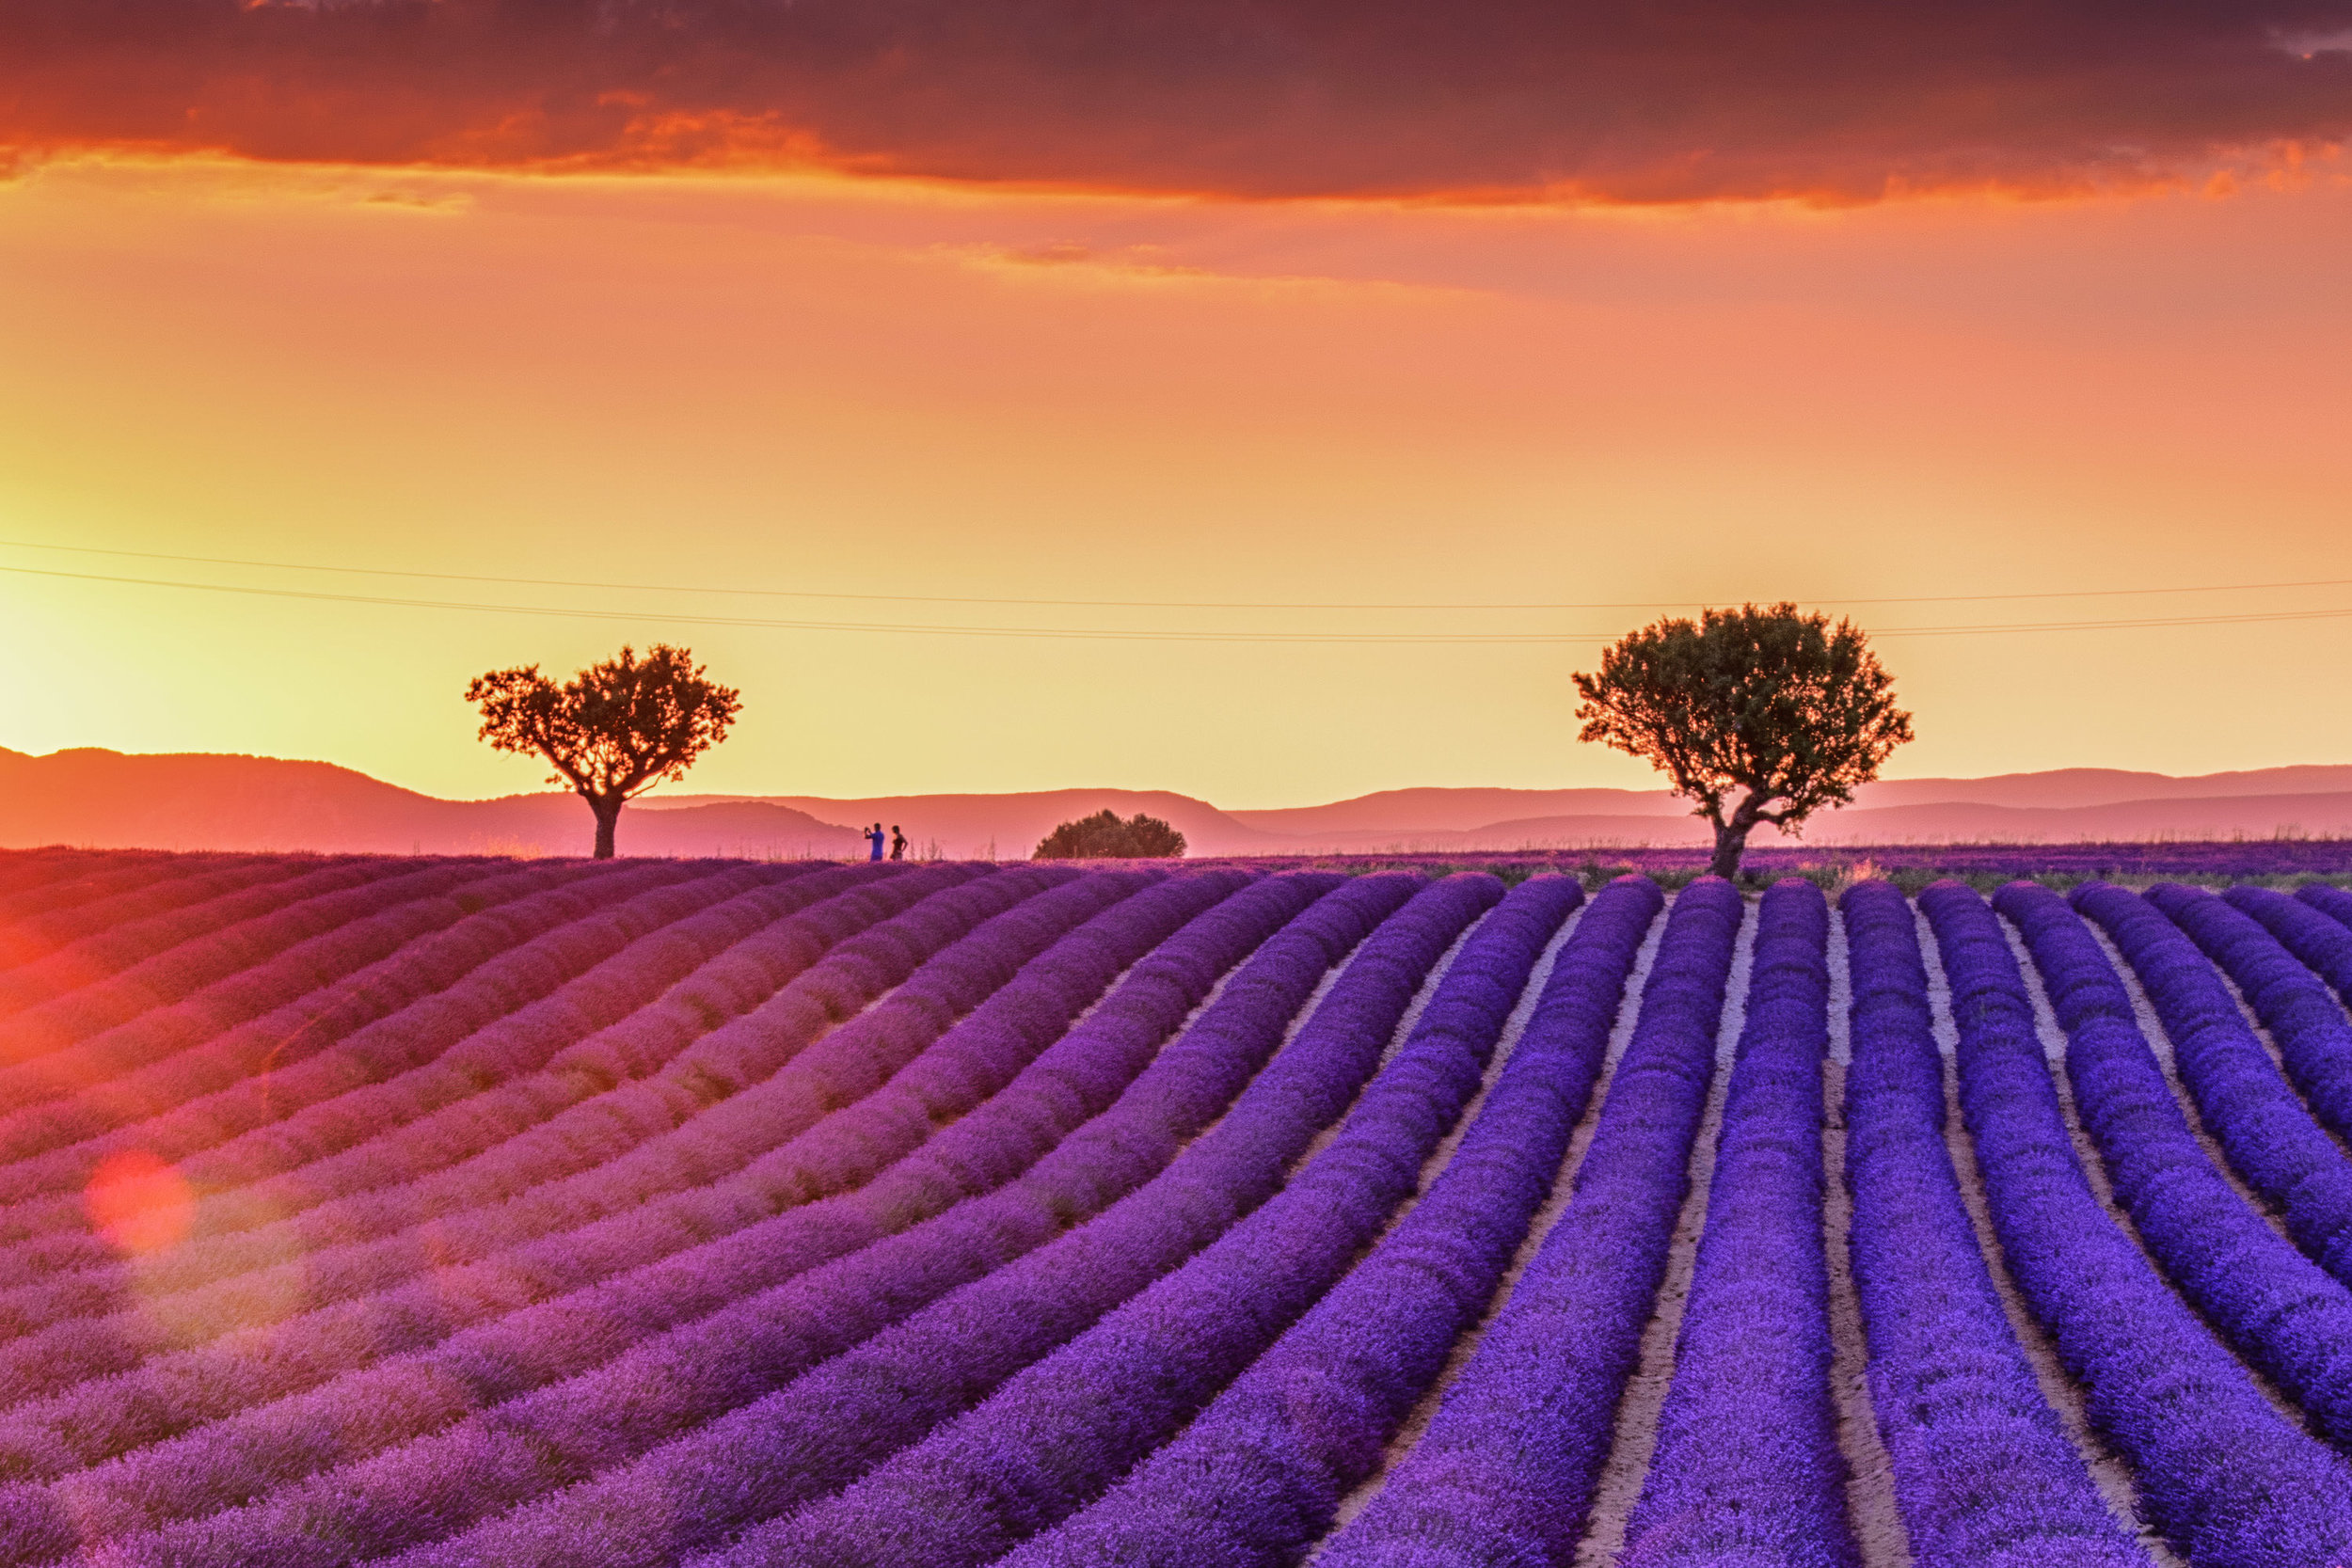 FANCY LAVENDER SMELL AND AMAZING LANDSCAPES? -